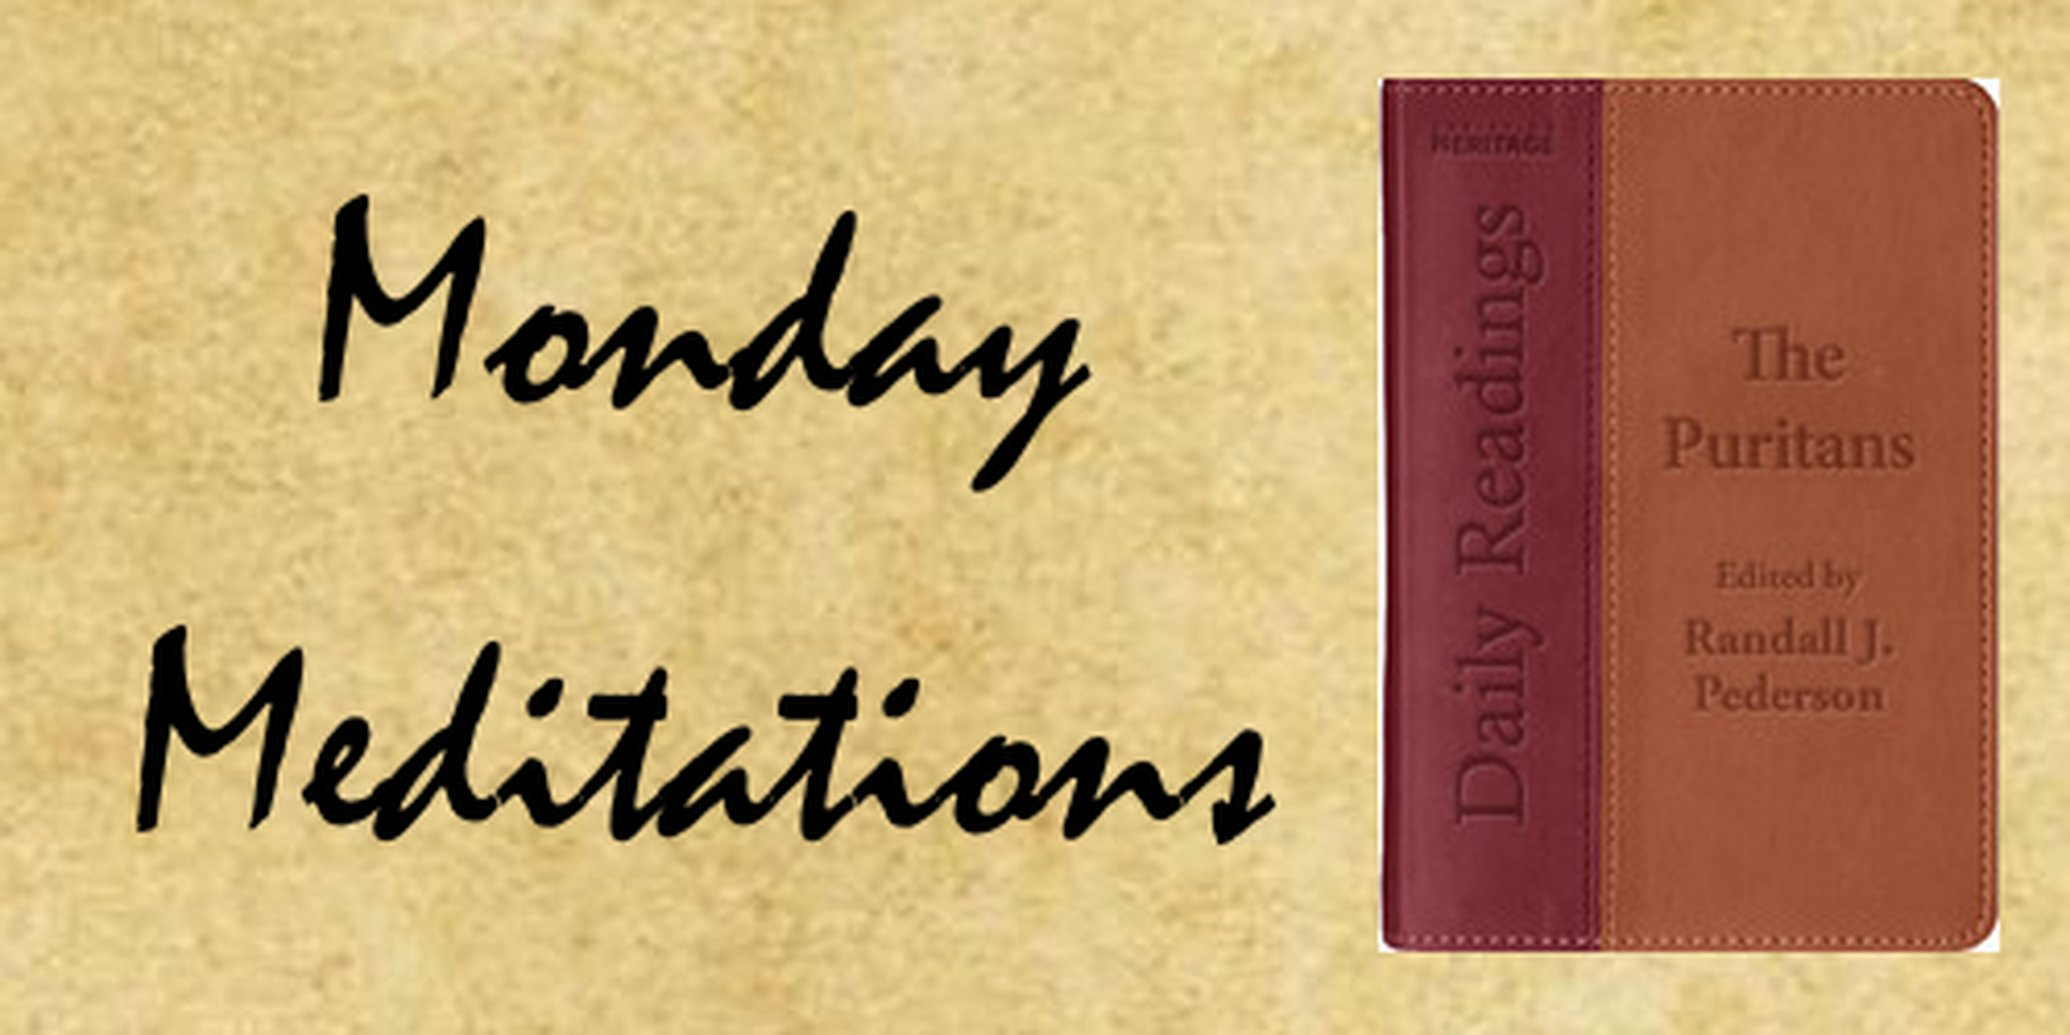 Monday Meditations: Recognition